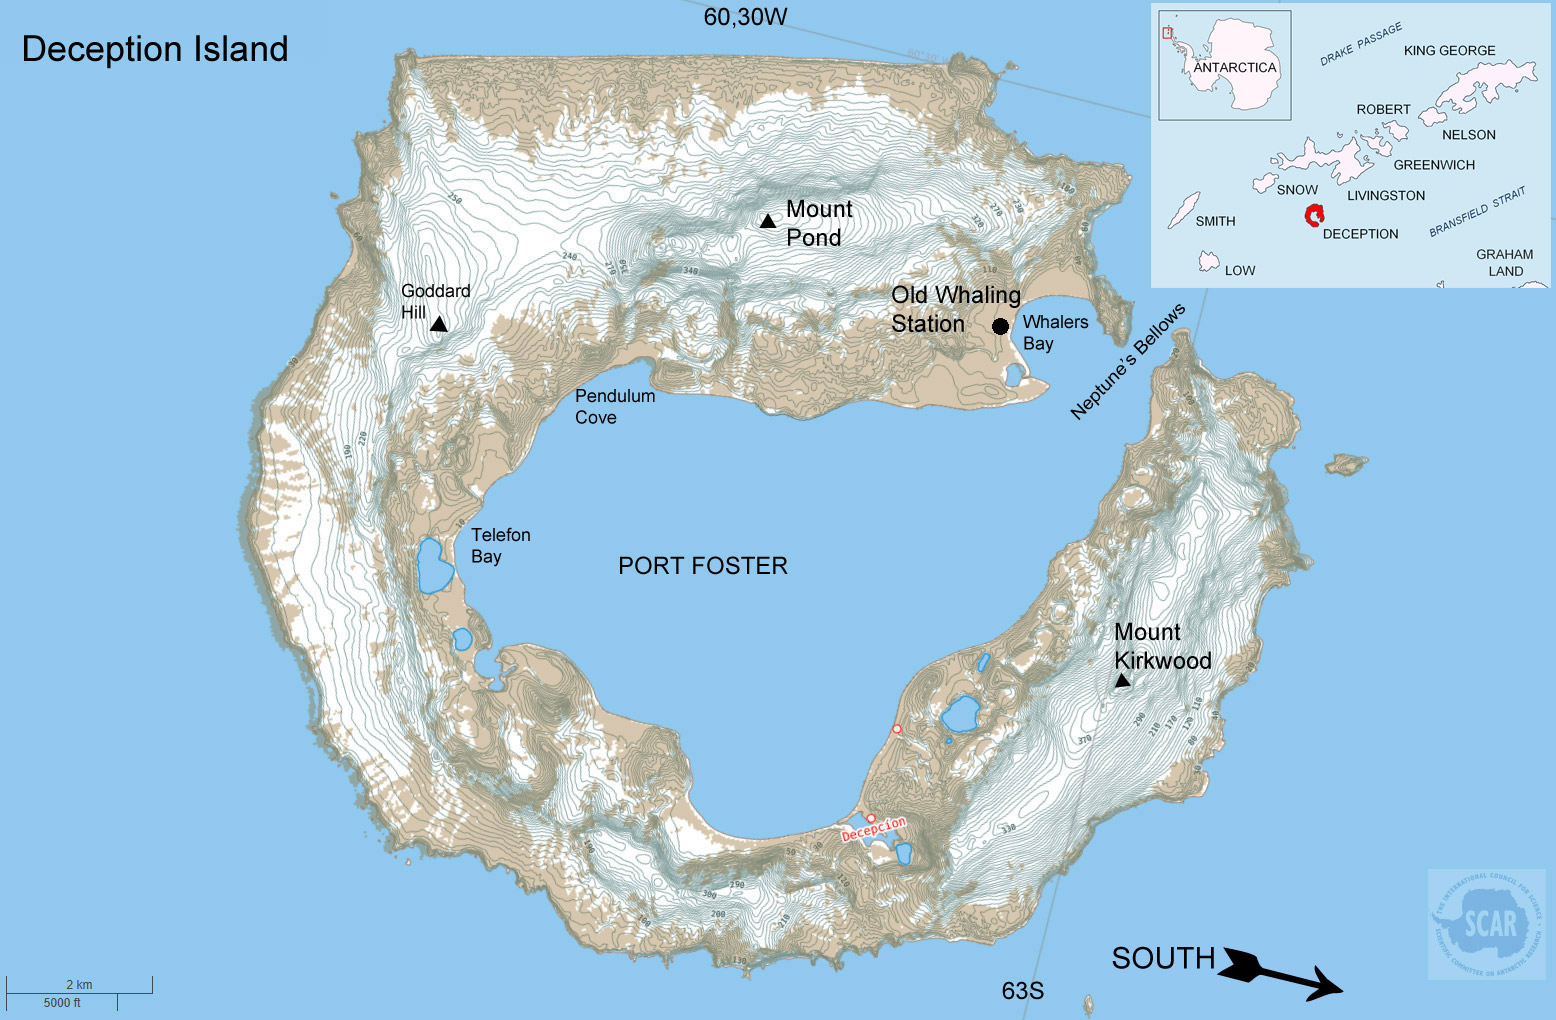 Regional Maps of Antarctica on map of argentina, south america, map of arctic, map of pangea, southern ocean, map of mongolia, map of north pole, map of europe, map of the continents, map of earth, map of south shetland islands, map of western hemisphere, south pole, pacific ocean, map of italy, indian ocean, map of iceland, map of south orkney islands, north america, arctic ocean, map of oceania, map of weddell sea, map of africa, map of antarctic peninsula, map of world, map of australia, map of ross ice shelf, north pole, atlantic ocean,